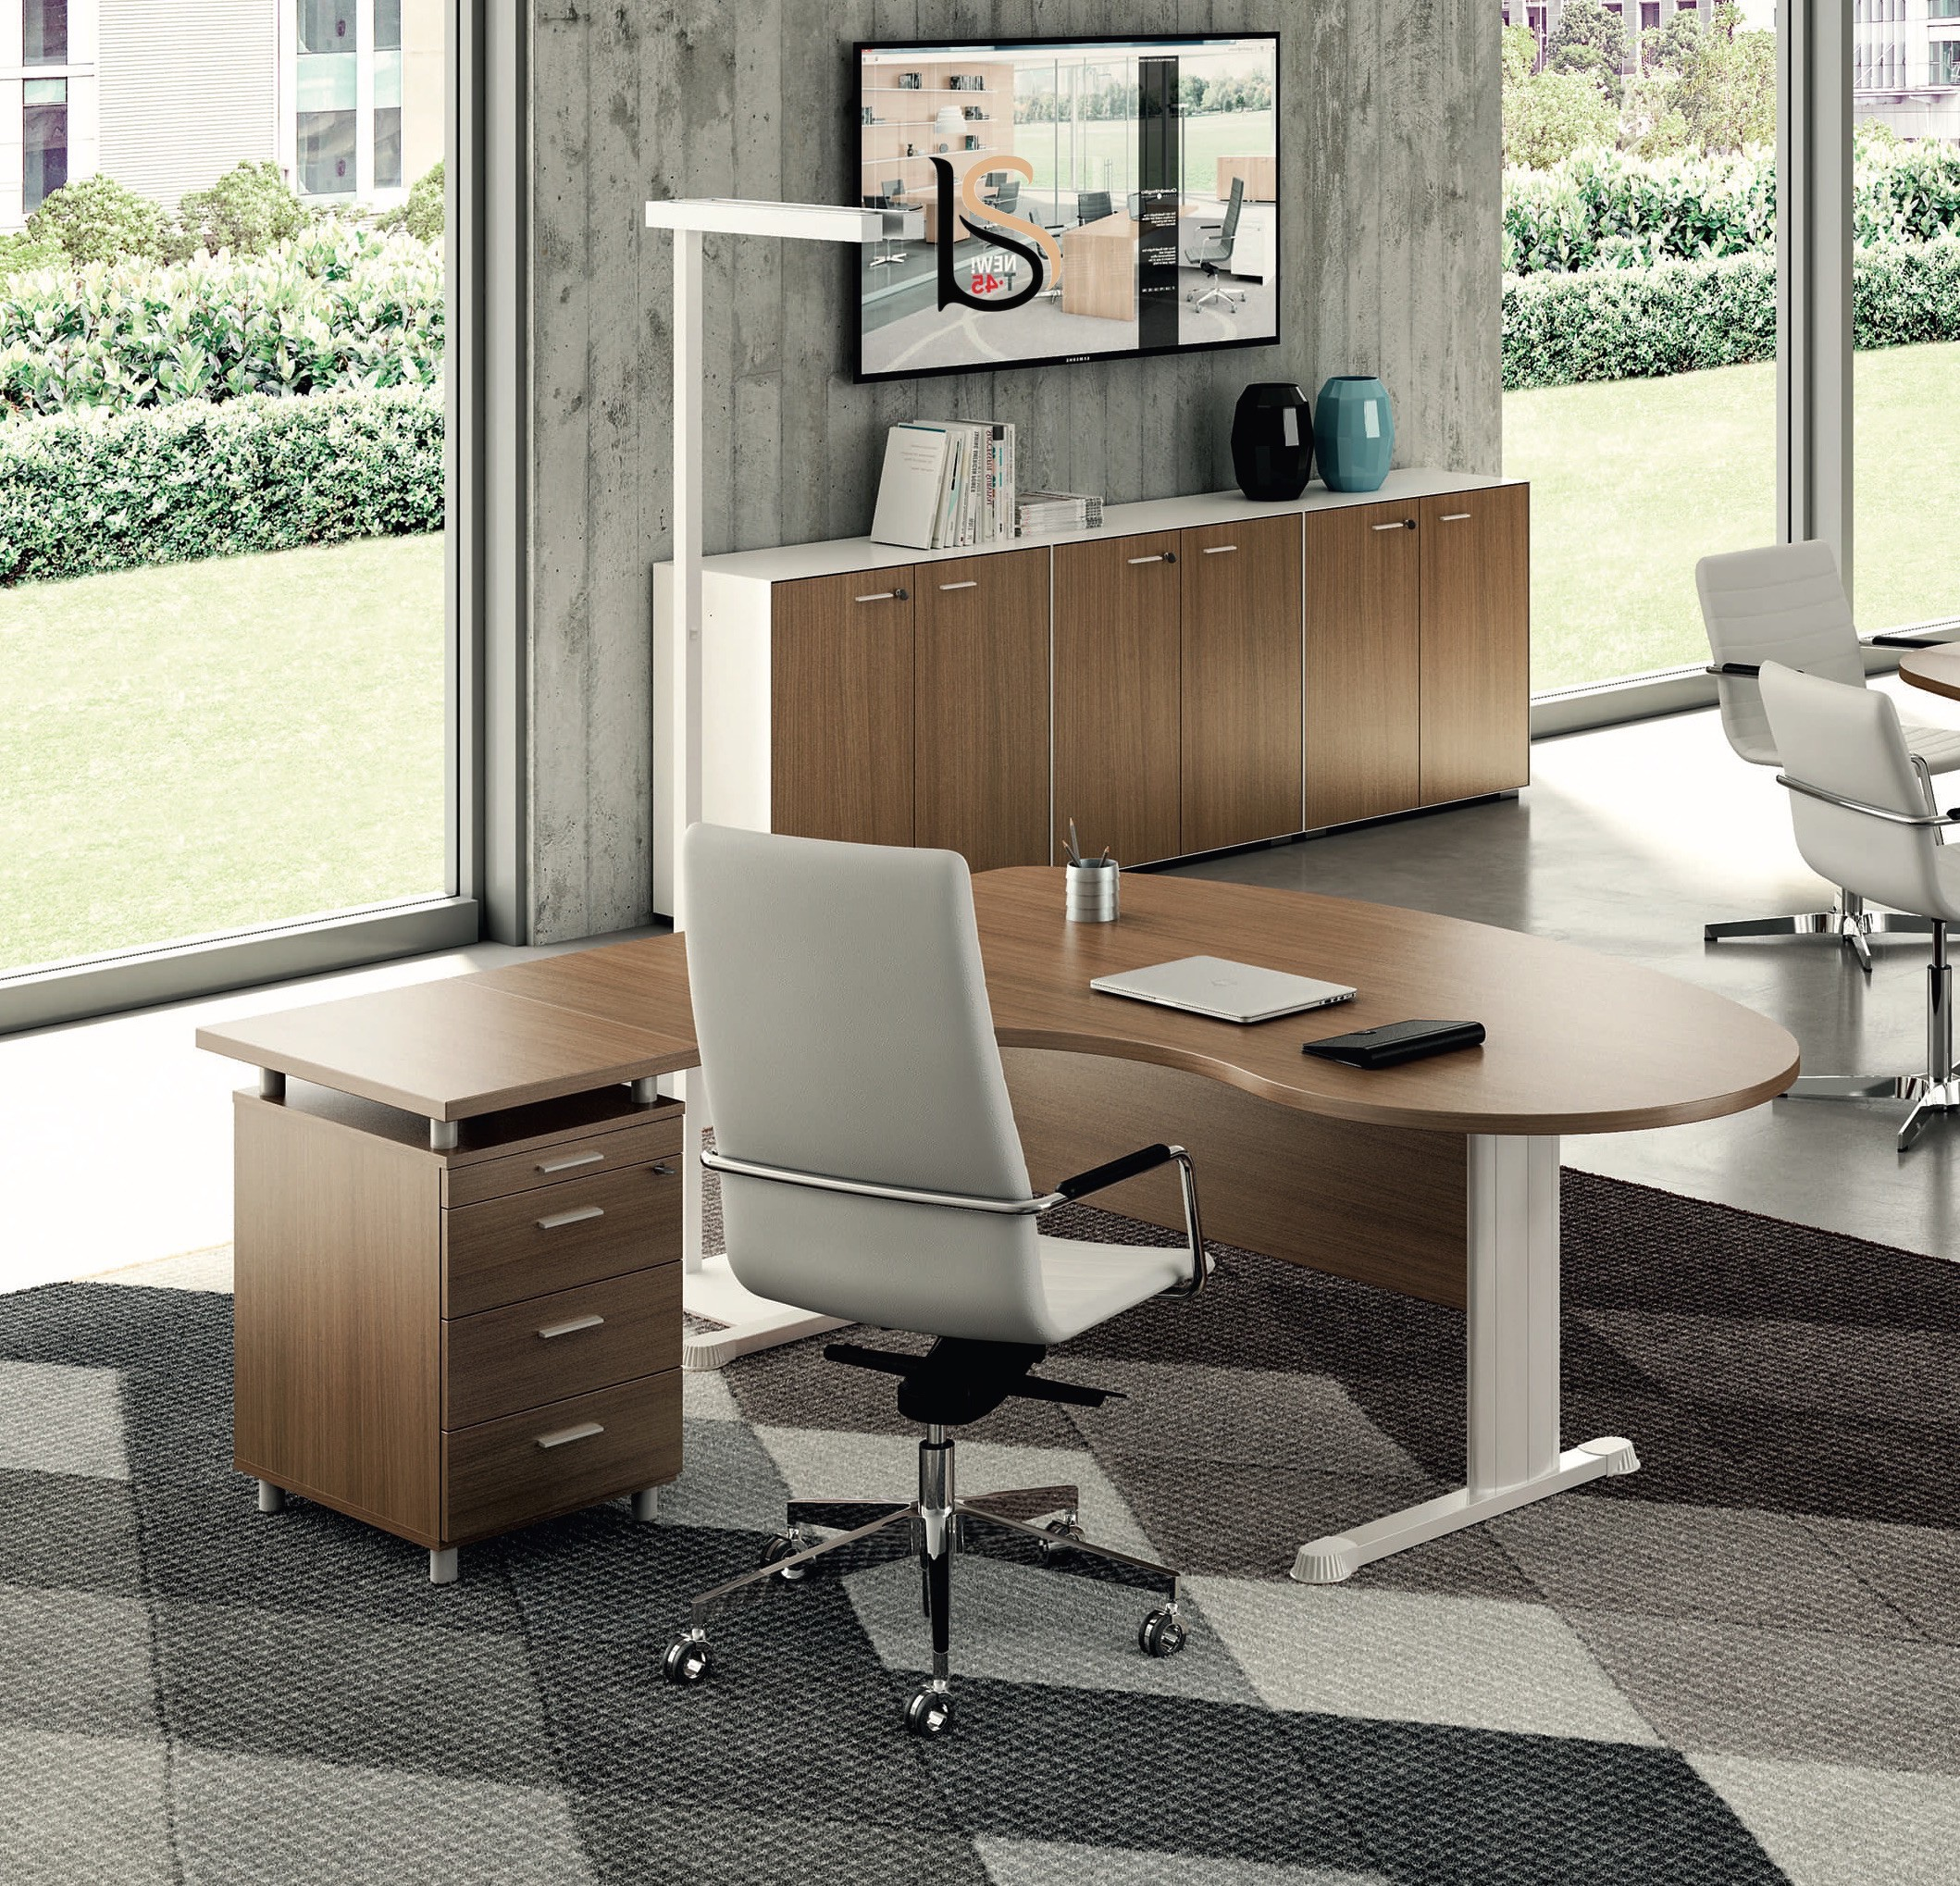 bureau ergonomique jet avec caisson quadrifoglio bureaux op rati. Black Bedroom Furniture Sets. Home Design Ideas